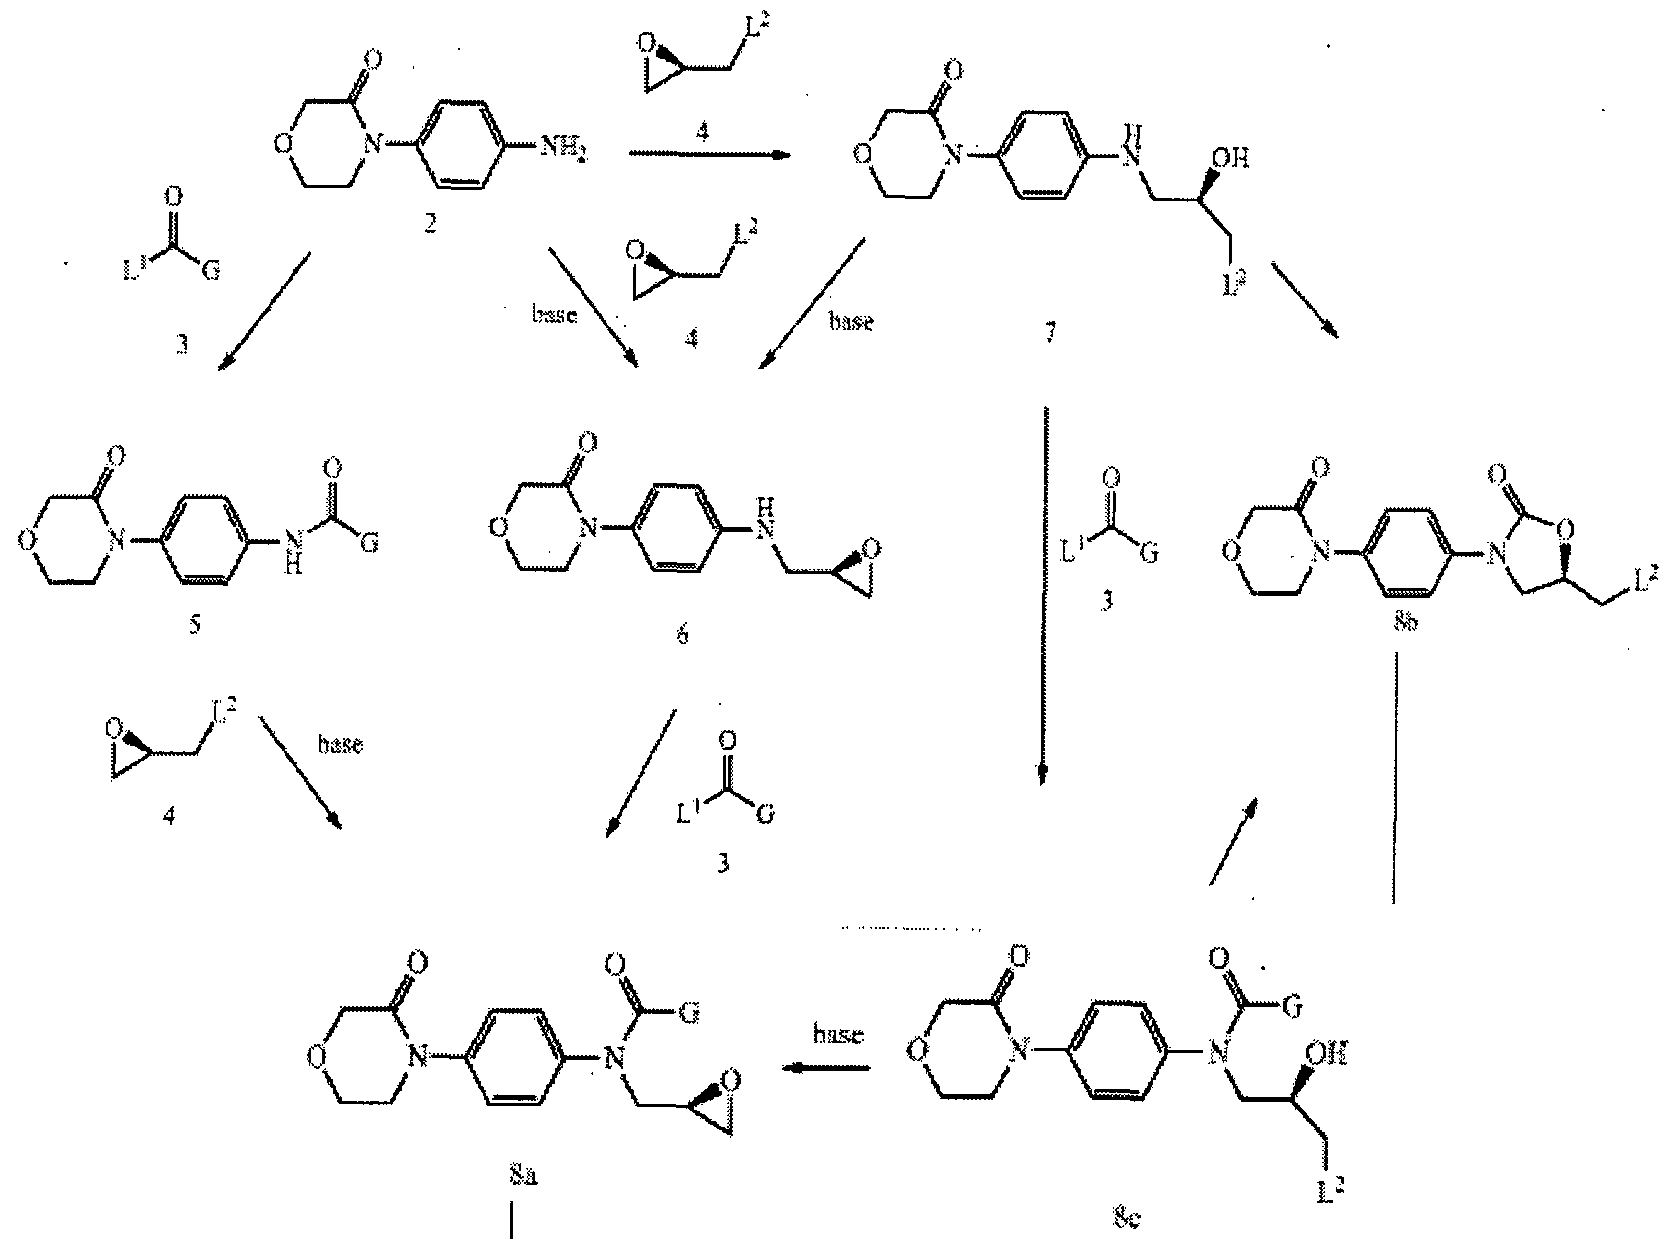 N Methyl 2 Pyrrolidone Is An Aprotic Solvent Used In Many Industrial Processes The process disclosed in the